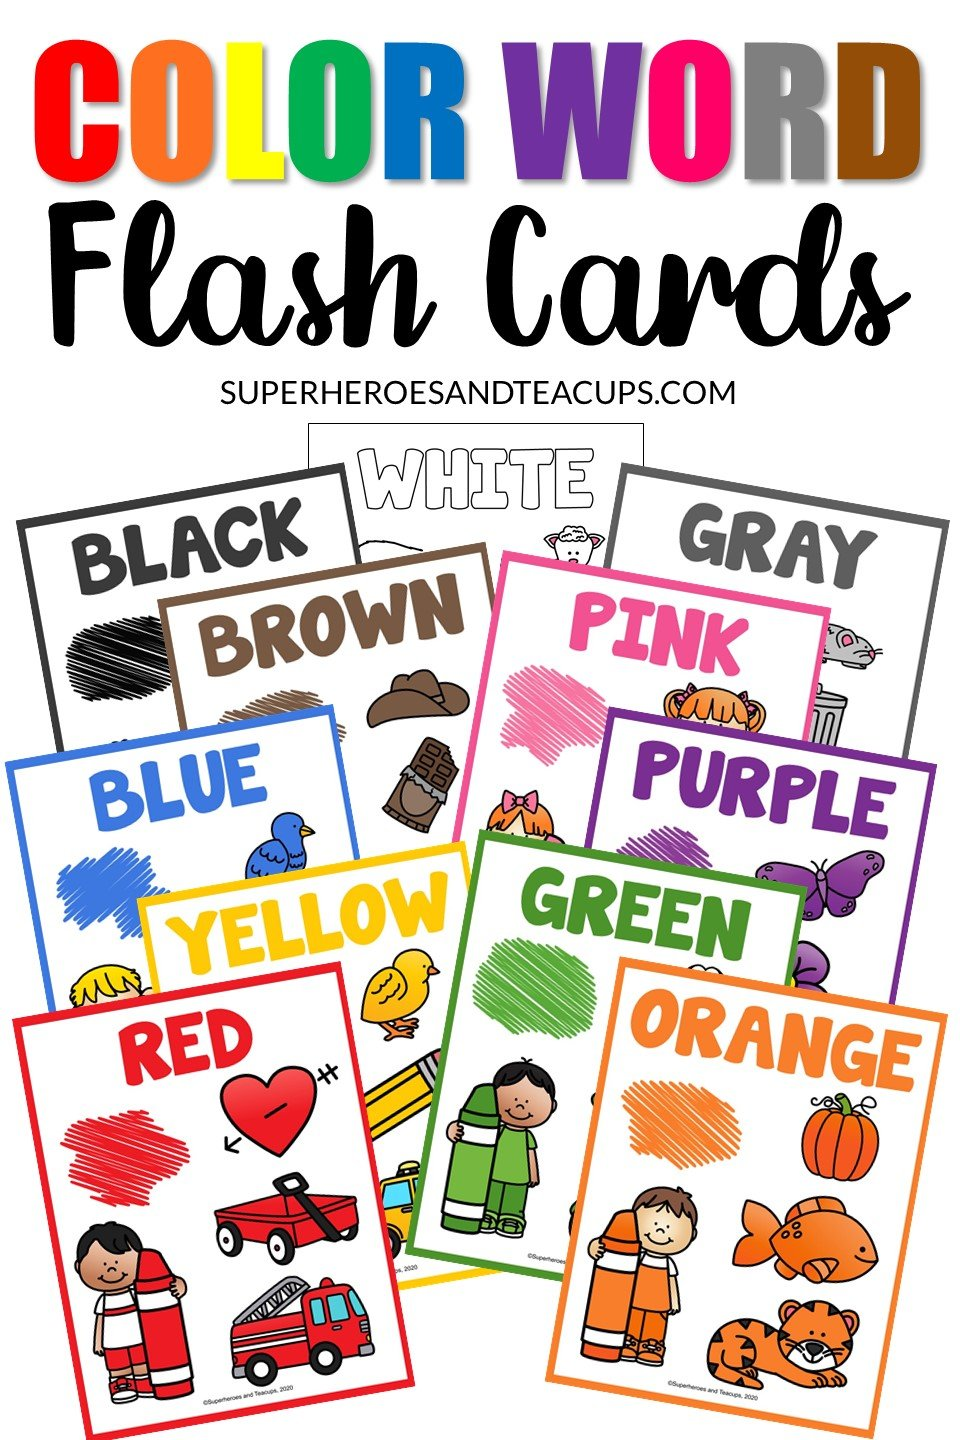 Free printable color word flash cards for kids.